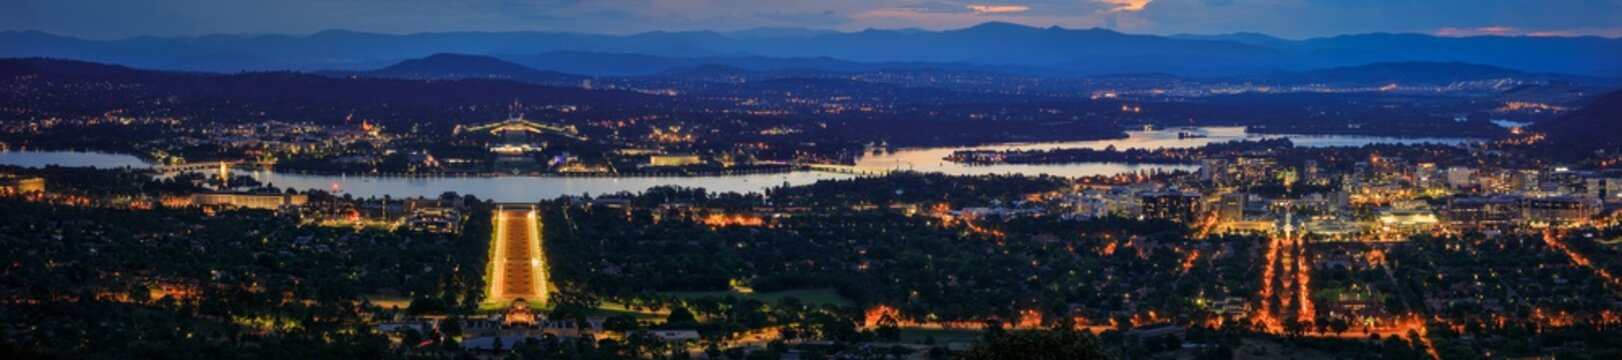 Canberra City Blue Hour Panorama